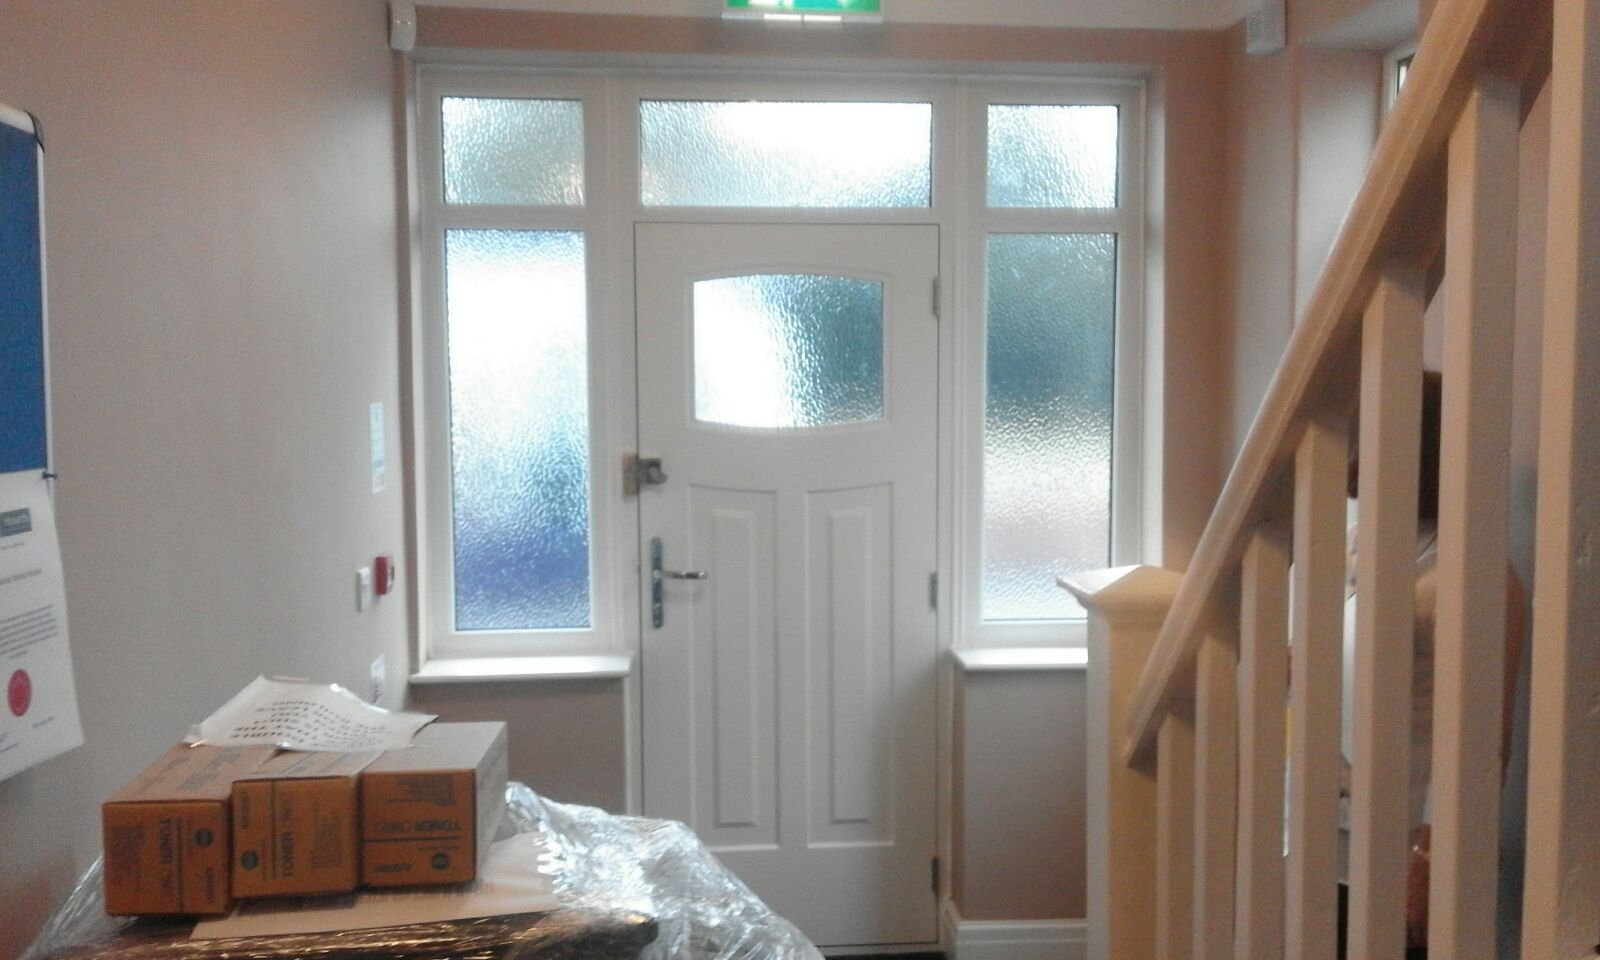 Interior Door Sales Gallery Glass Door Interior Doors Patio Doors Rock Door Prices Rock Doors Bolton & Doors Wigan u0026 Slide Title pezcame.com